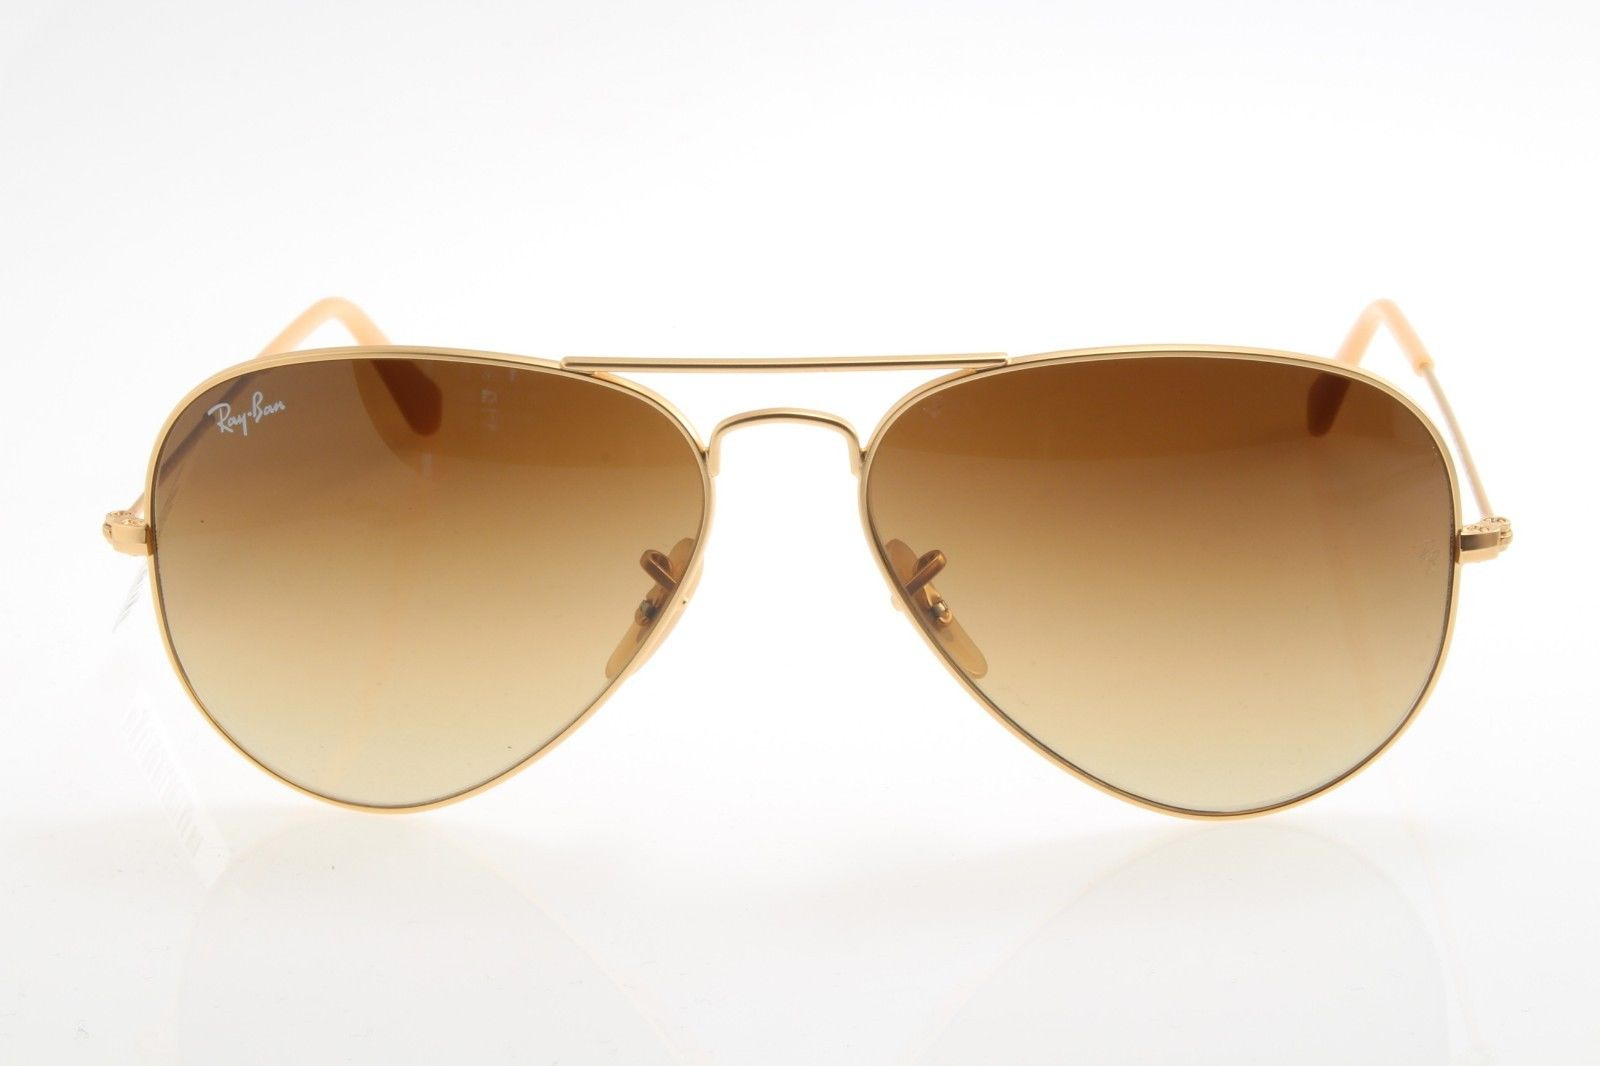 ray ban aviator mercury golden sunglasses  new original sunglasses ray ban rb 3025 112/85 55 aviator gold brown gradient